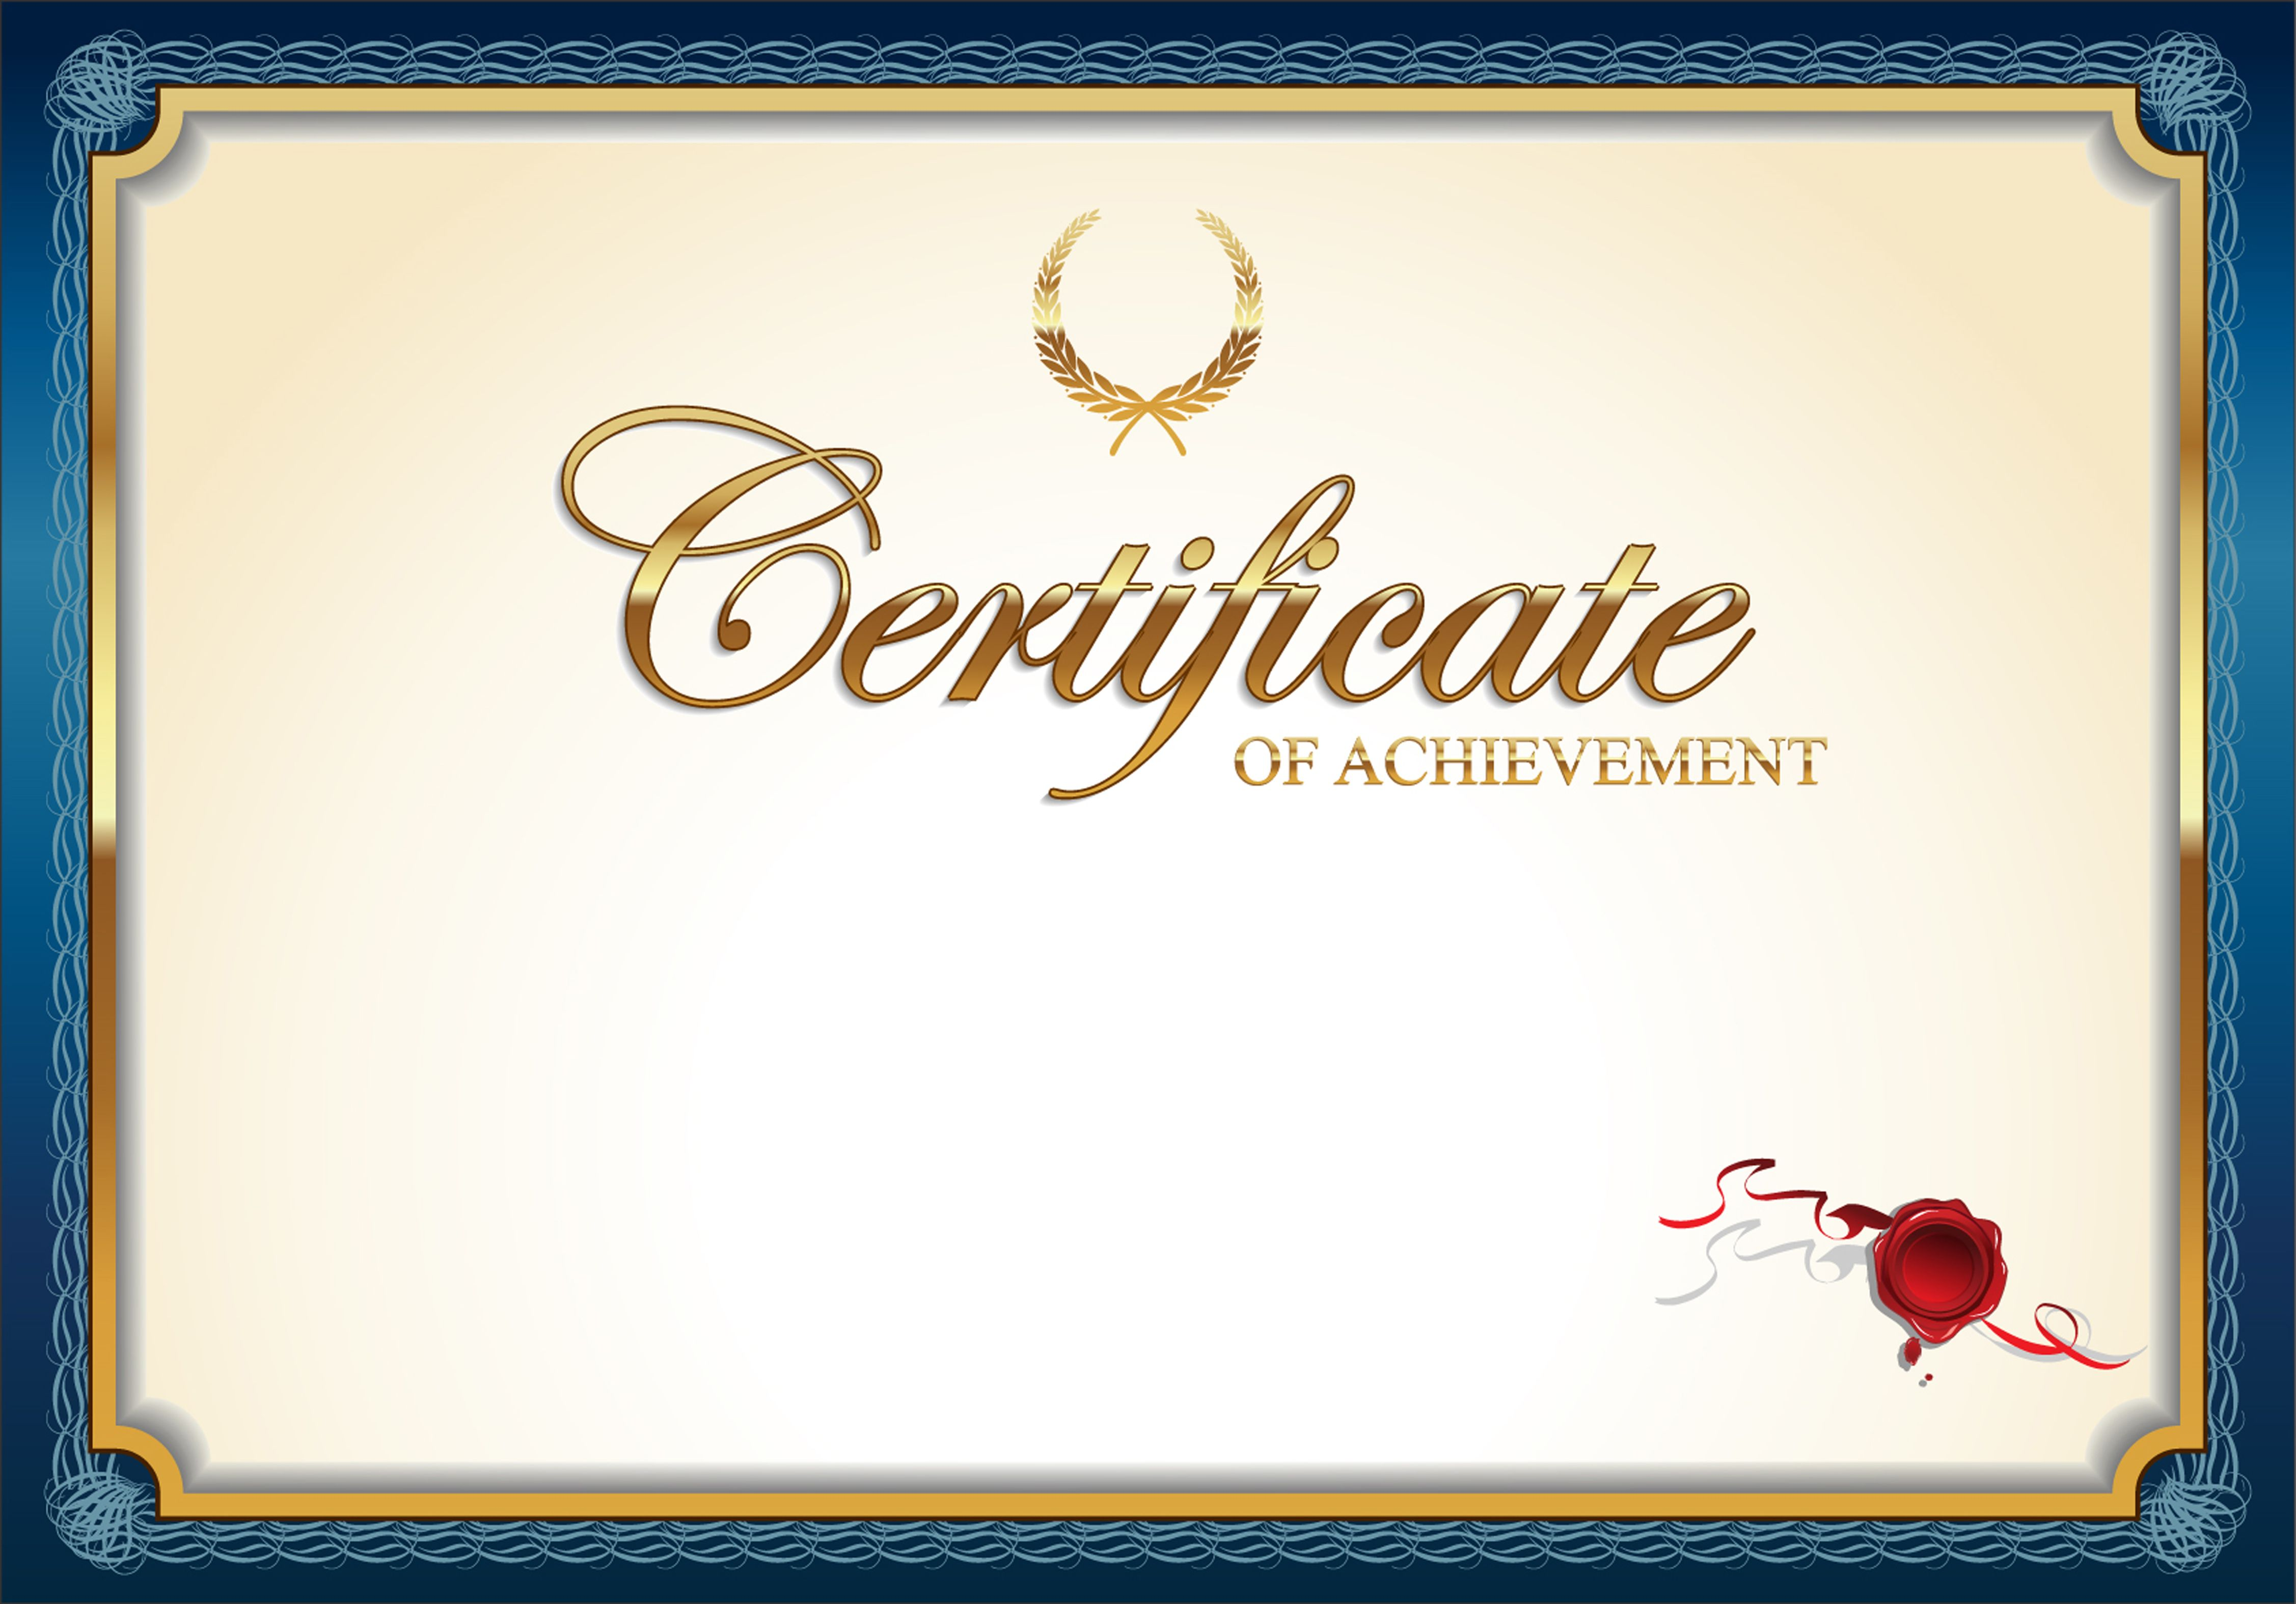 Certificate Templates Honor Of Authorization Credentials Border Card Art Decorative Leaf Certificate Background Certificate Design Certificate Design Template